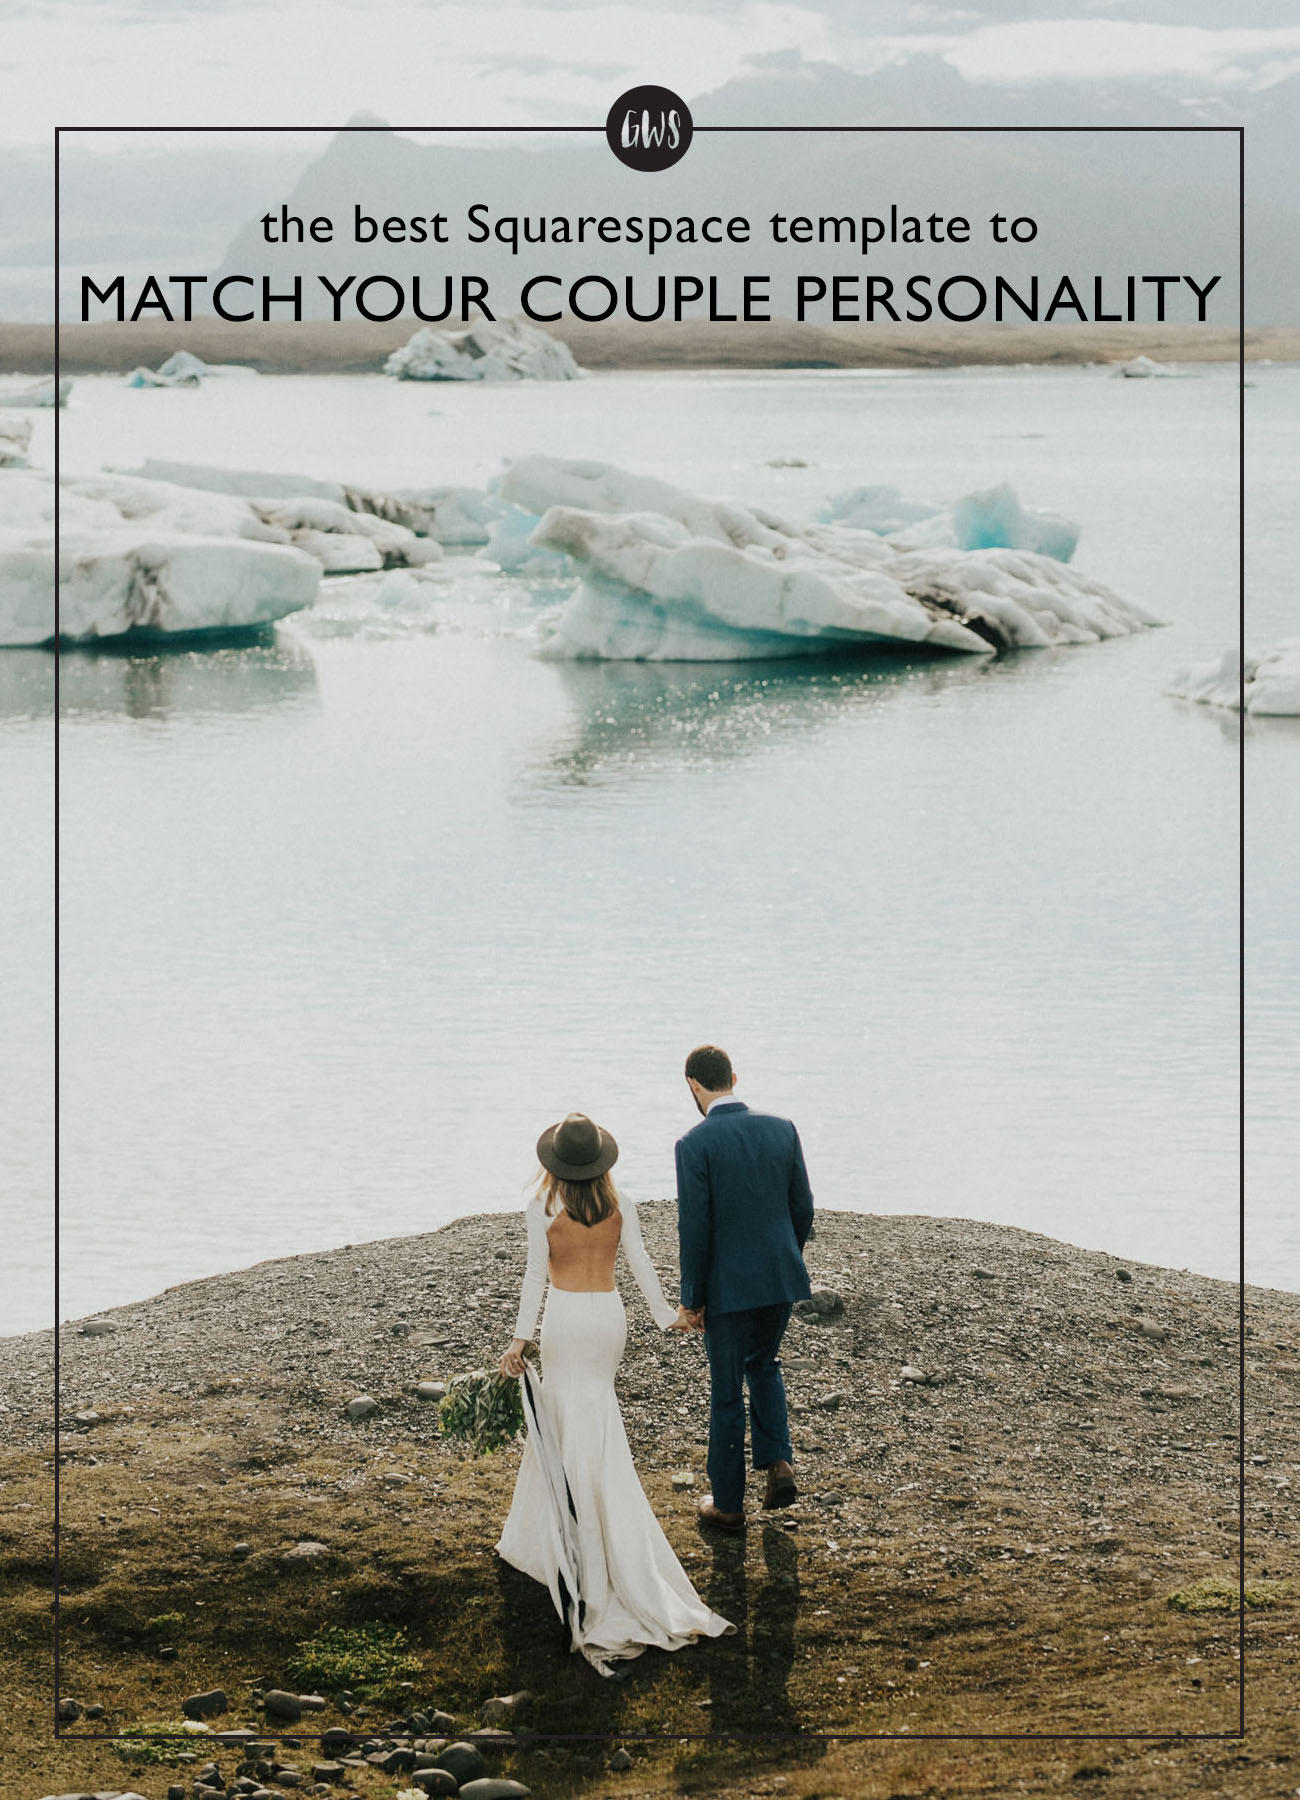 Which One Are You? Take the Quiz to Find Your Wedding